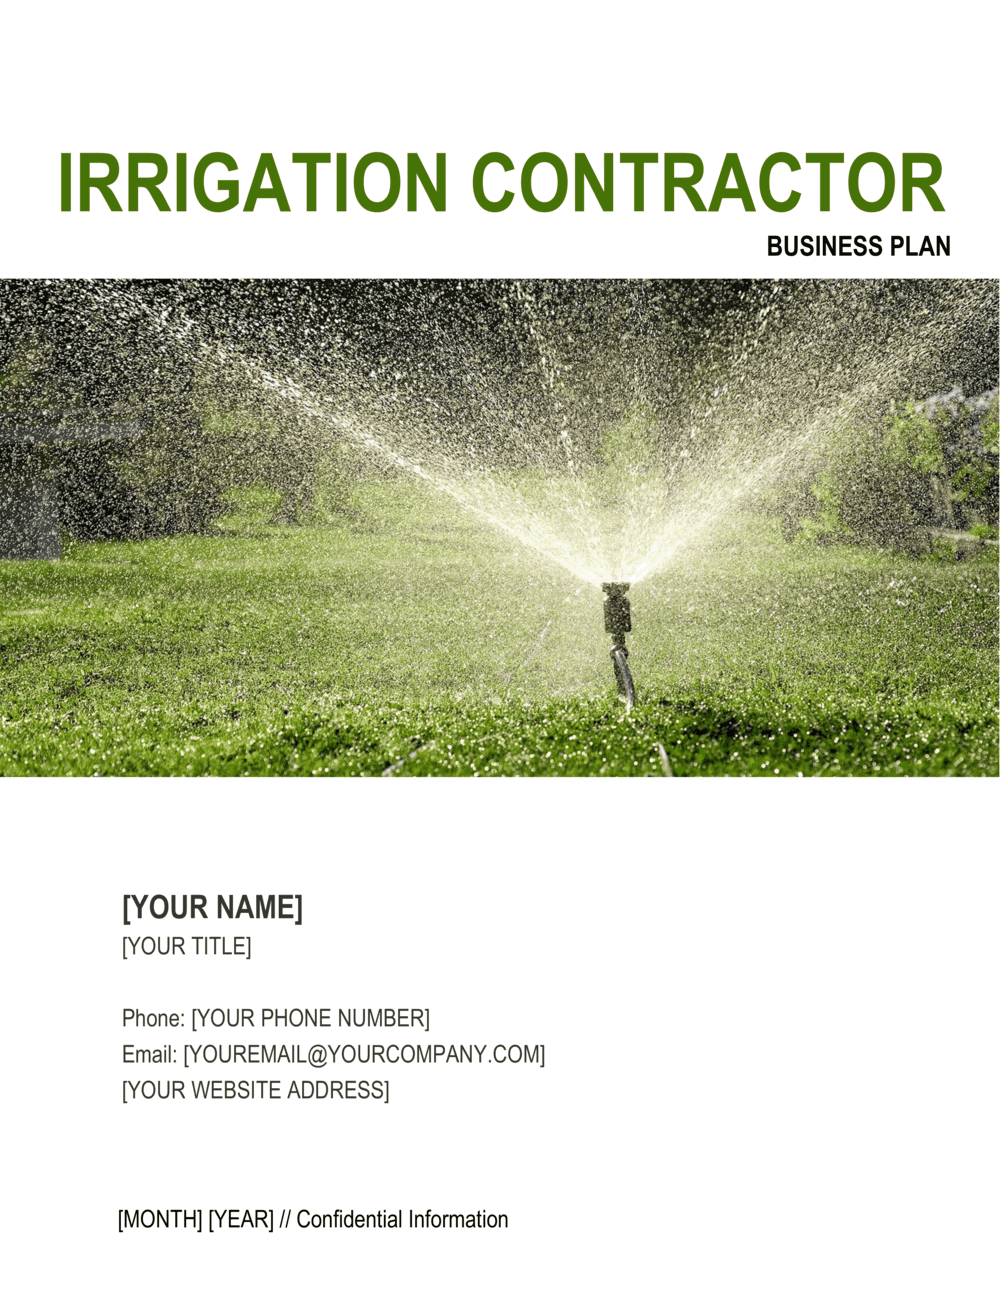 Business-in-a-Box's Irrigation Contractor Business Plan Template